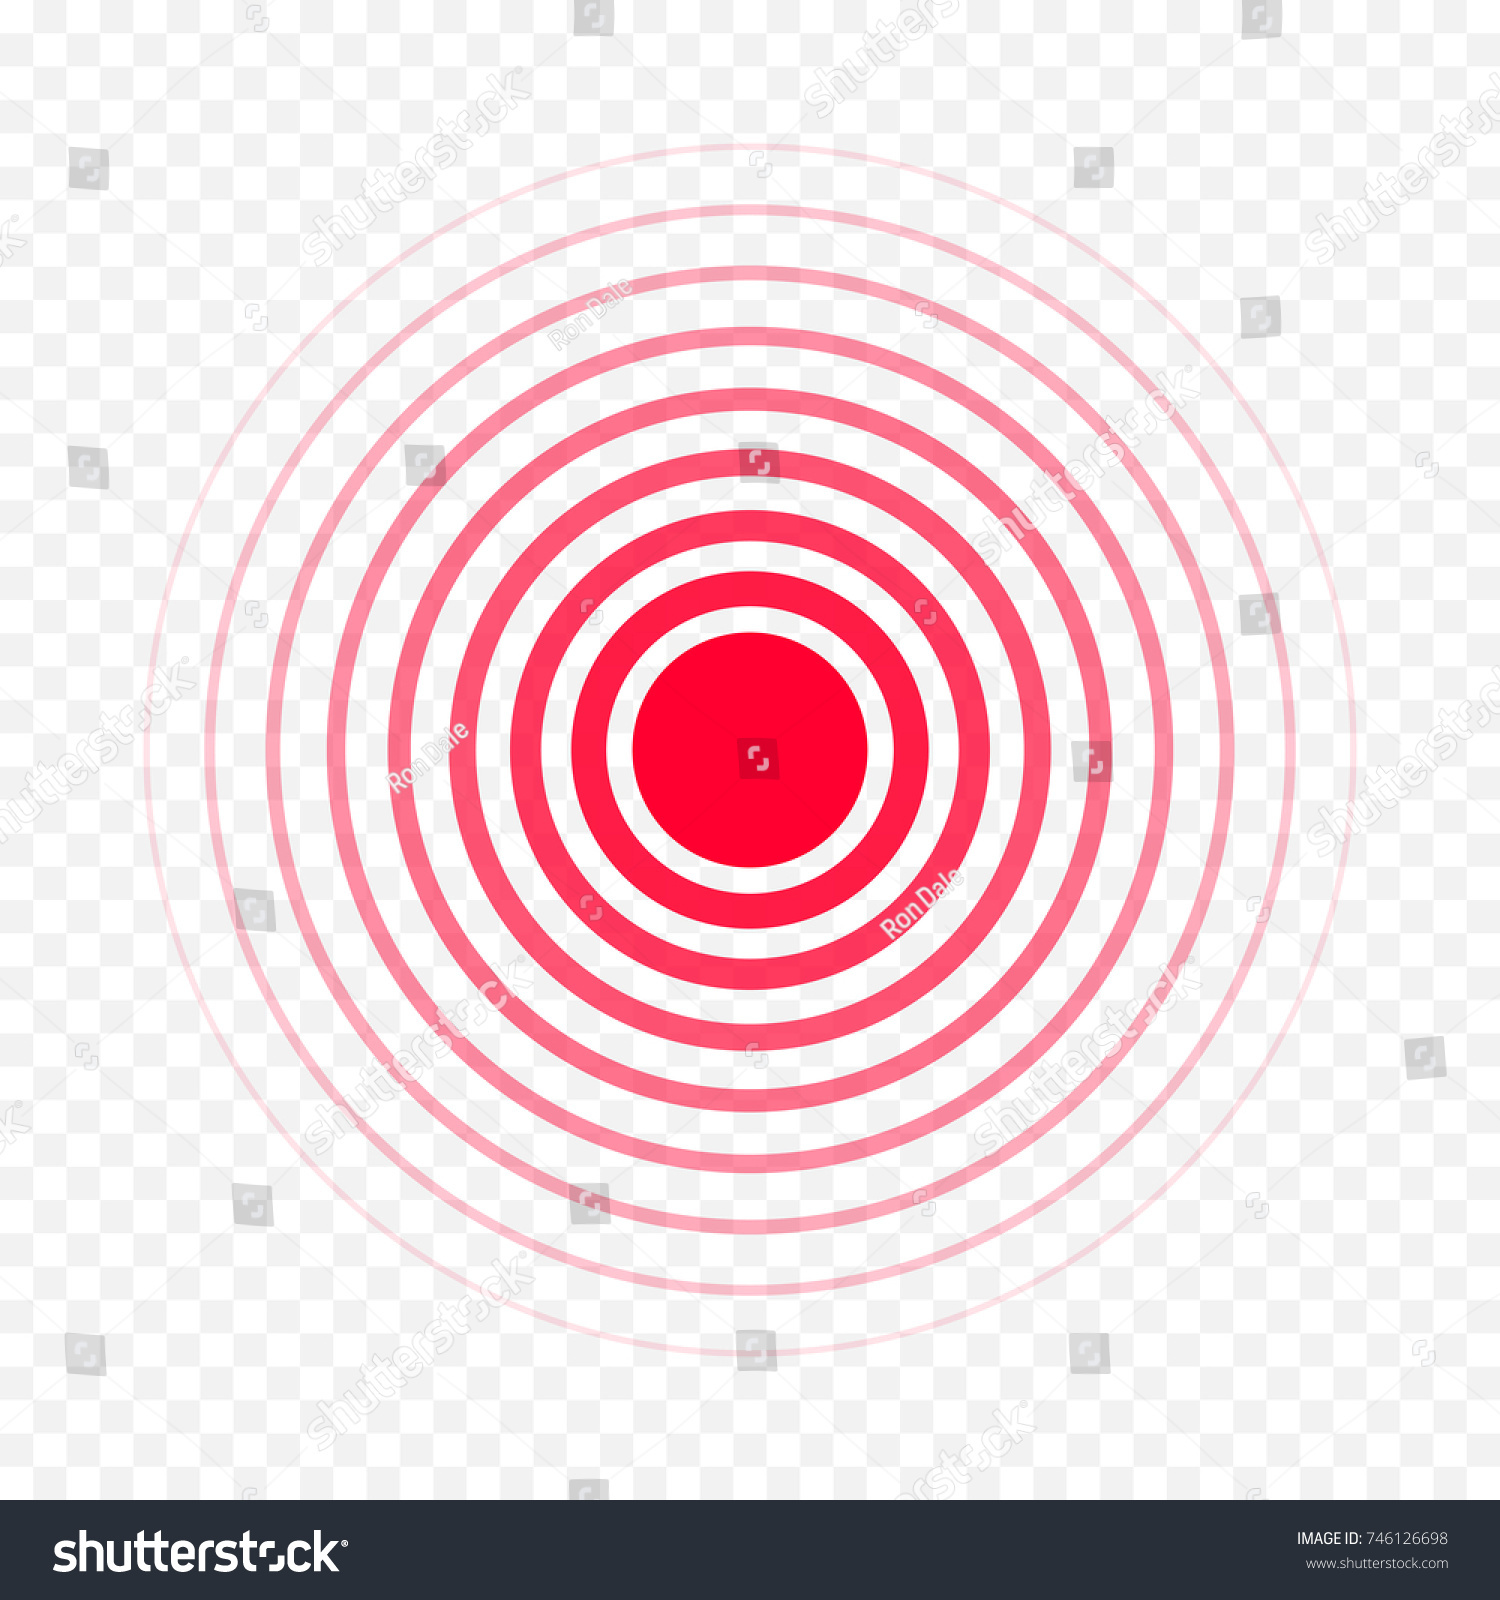 Red circle symbol images symbol and sign ideas pain circle red icon medical painkiller stock vector 746126698 pain circle red icon for medical painkiller buycottarizona Image collections